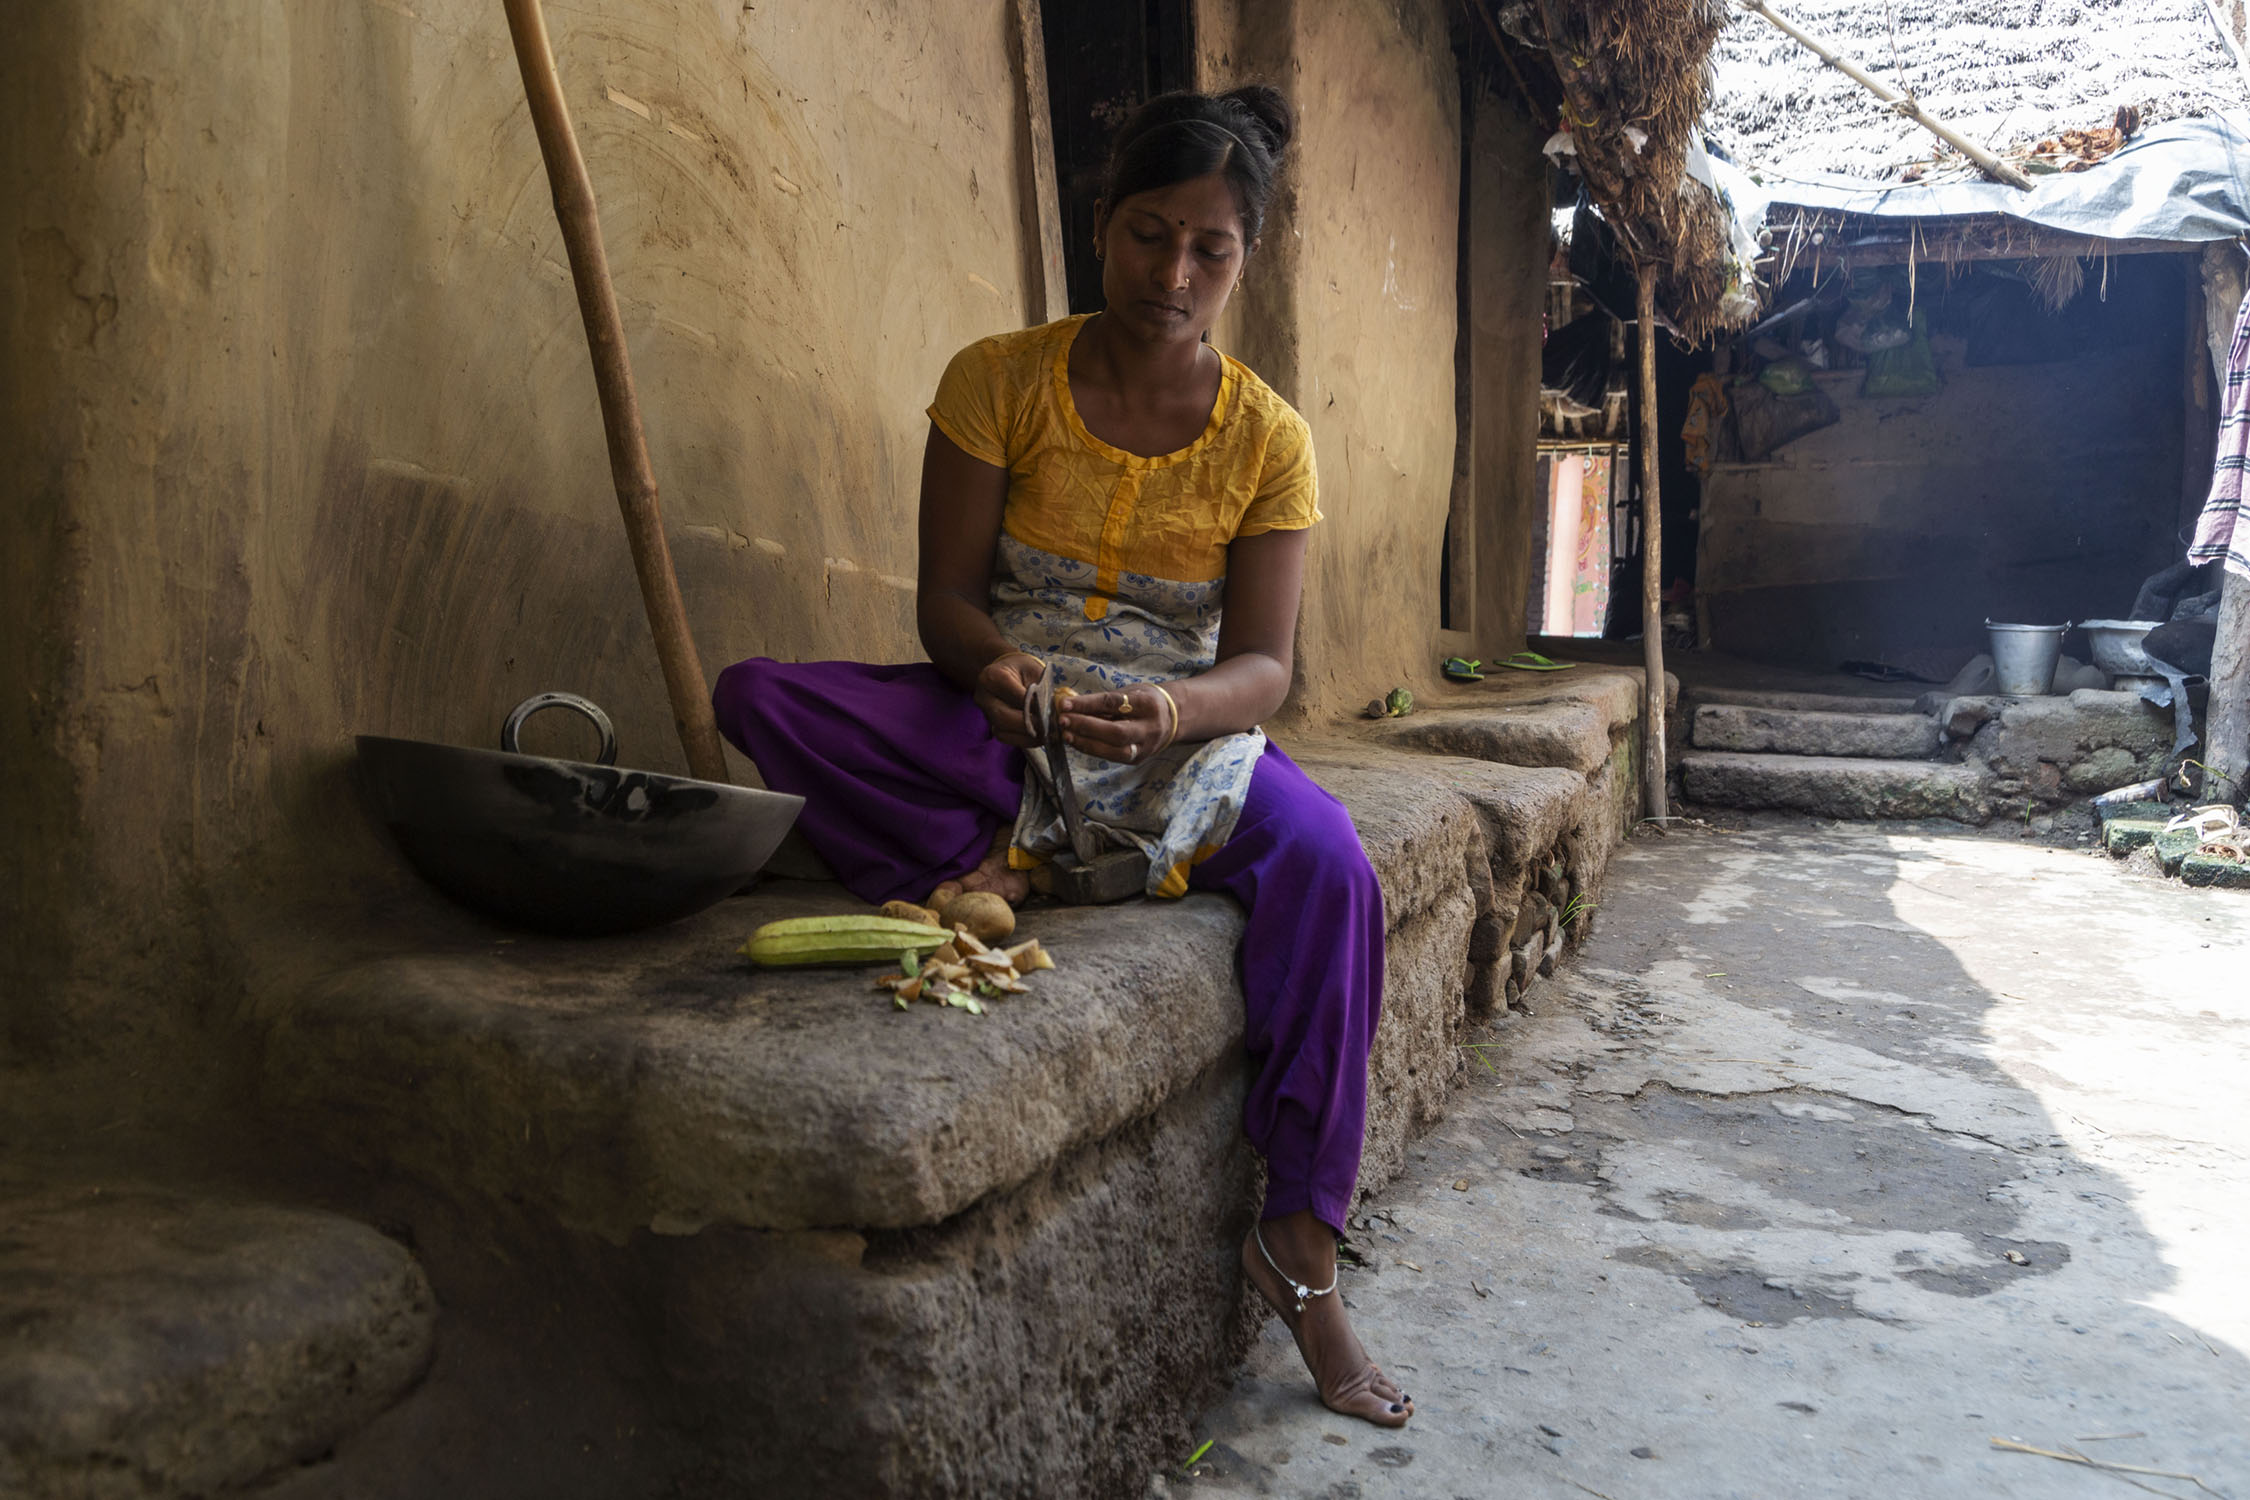 Koushalya sits on the stone ledge that skirts her house. One leg is crossed beneath her and the other is dangling to the ground. She is cutting vegetables with a knife. The outer wall of the house is plastered with mud.